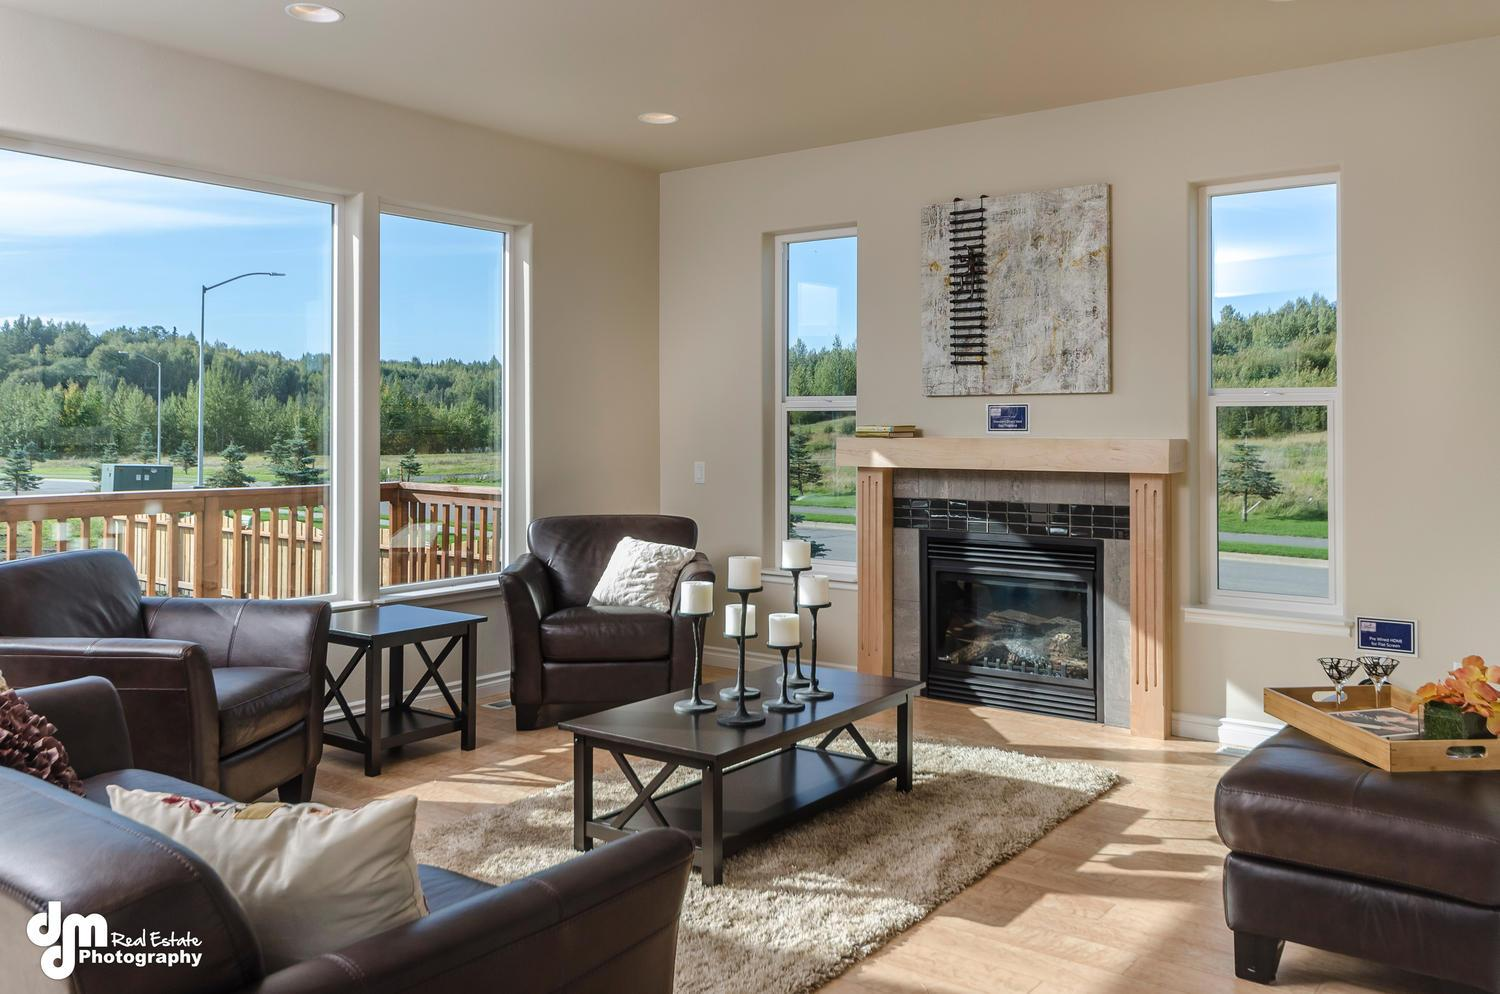 Living Area featured in the St Elias X 2335 By Spinell Homes in Anchorage, AK